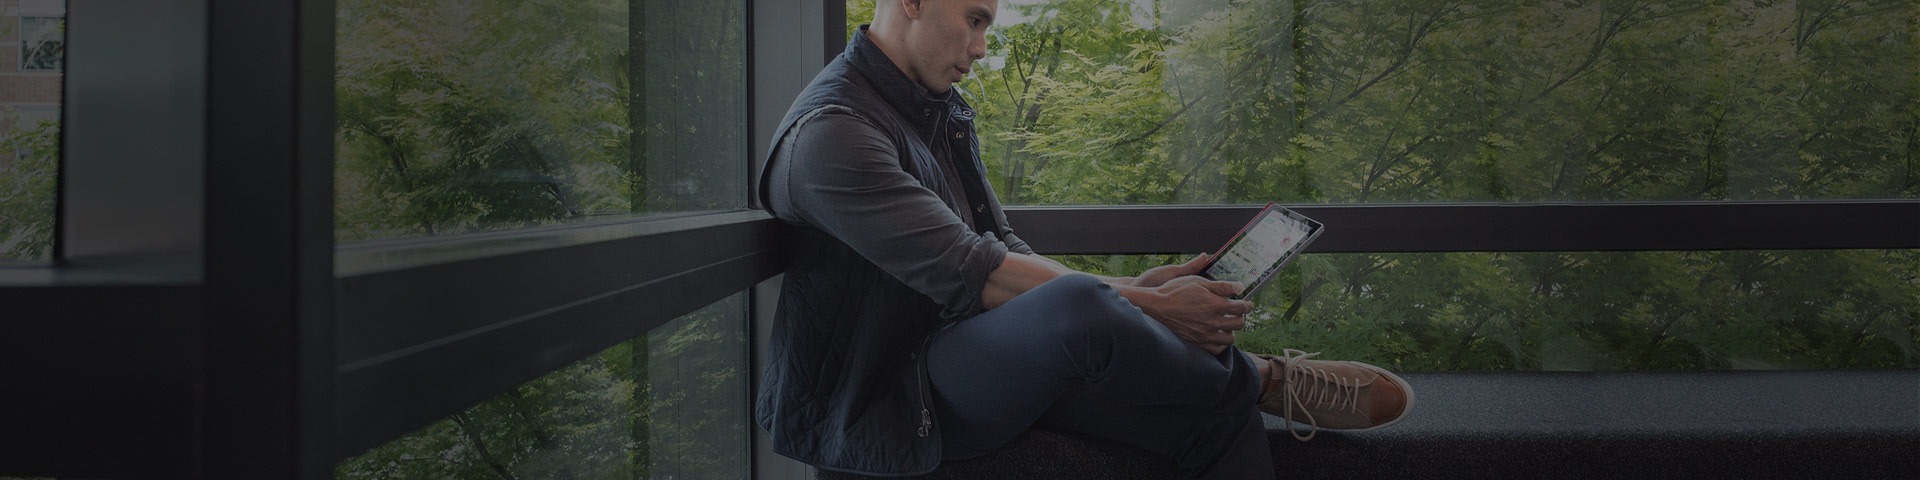 A man sits on a bench, looks at a device in his hands